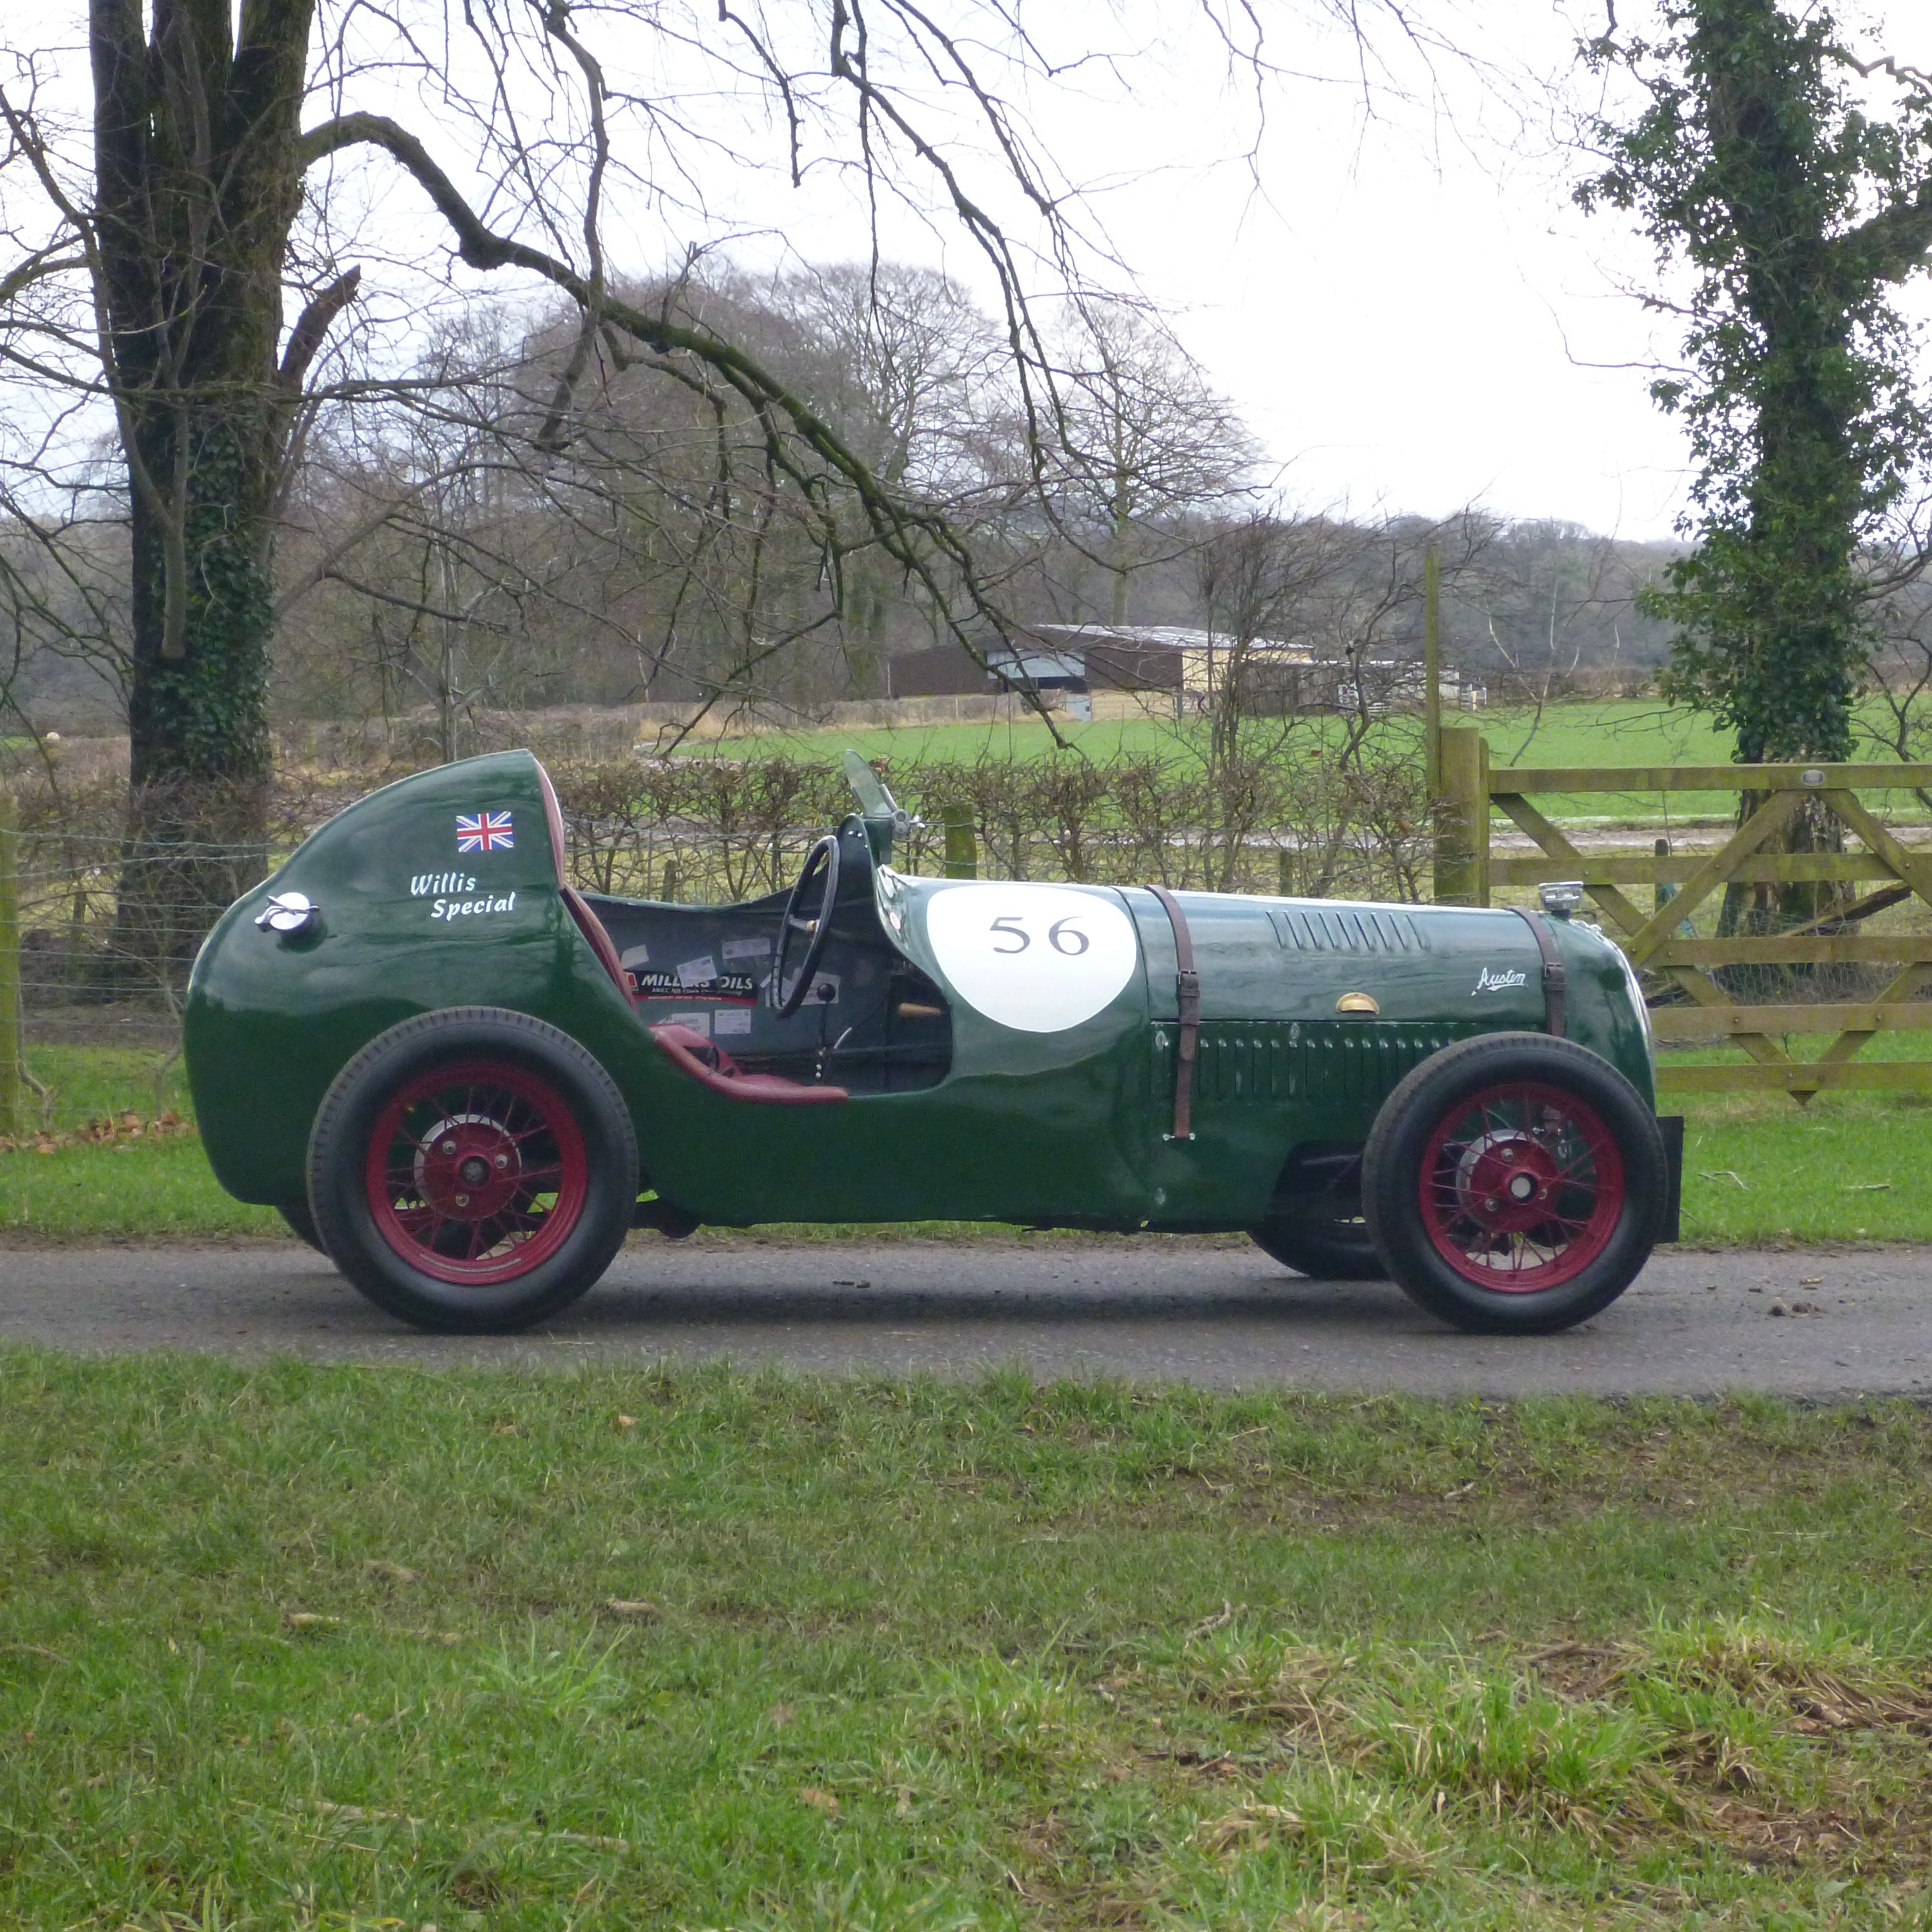 Willis special Supercharged Austin 7 single seater Green, for sale ...